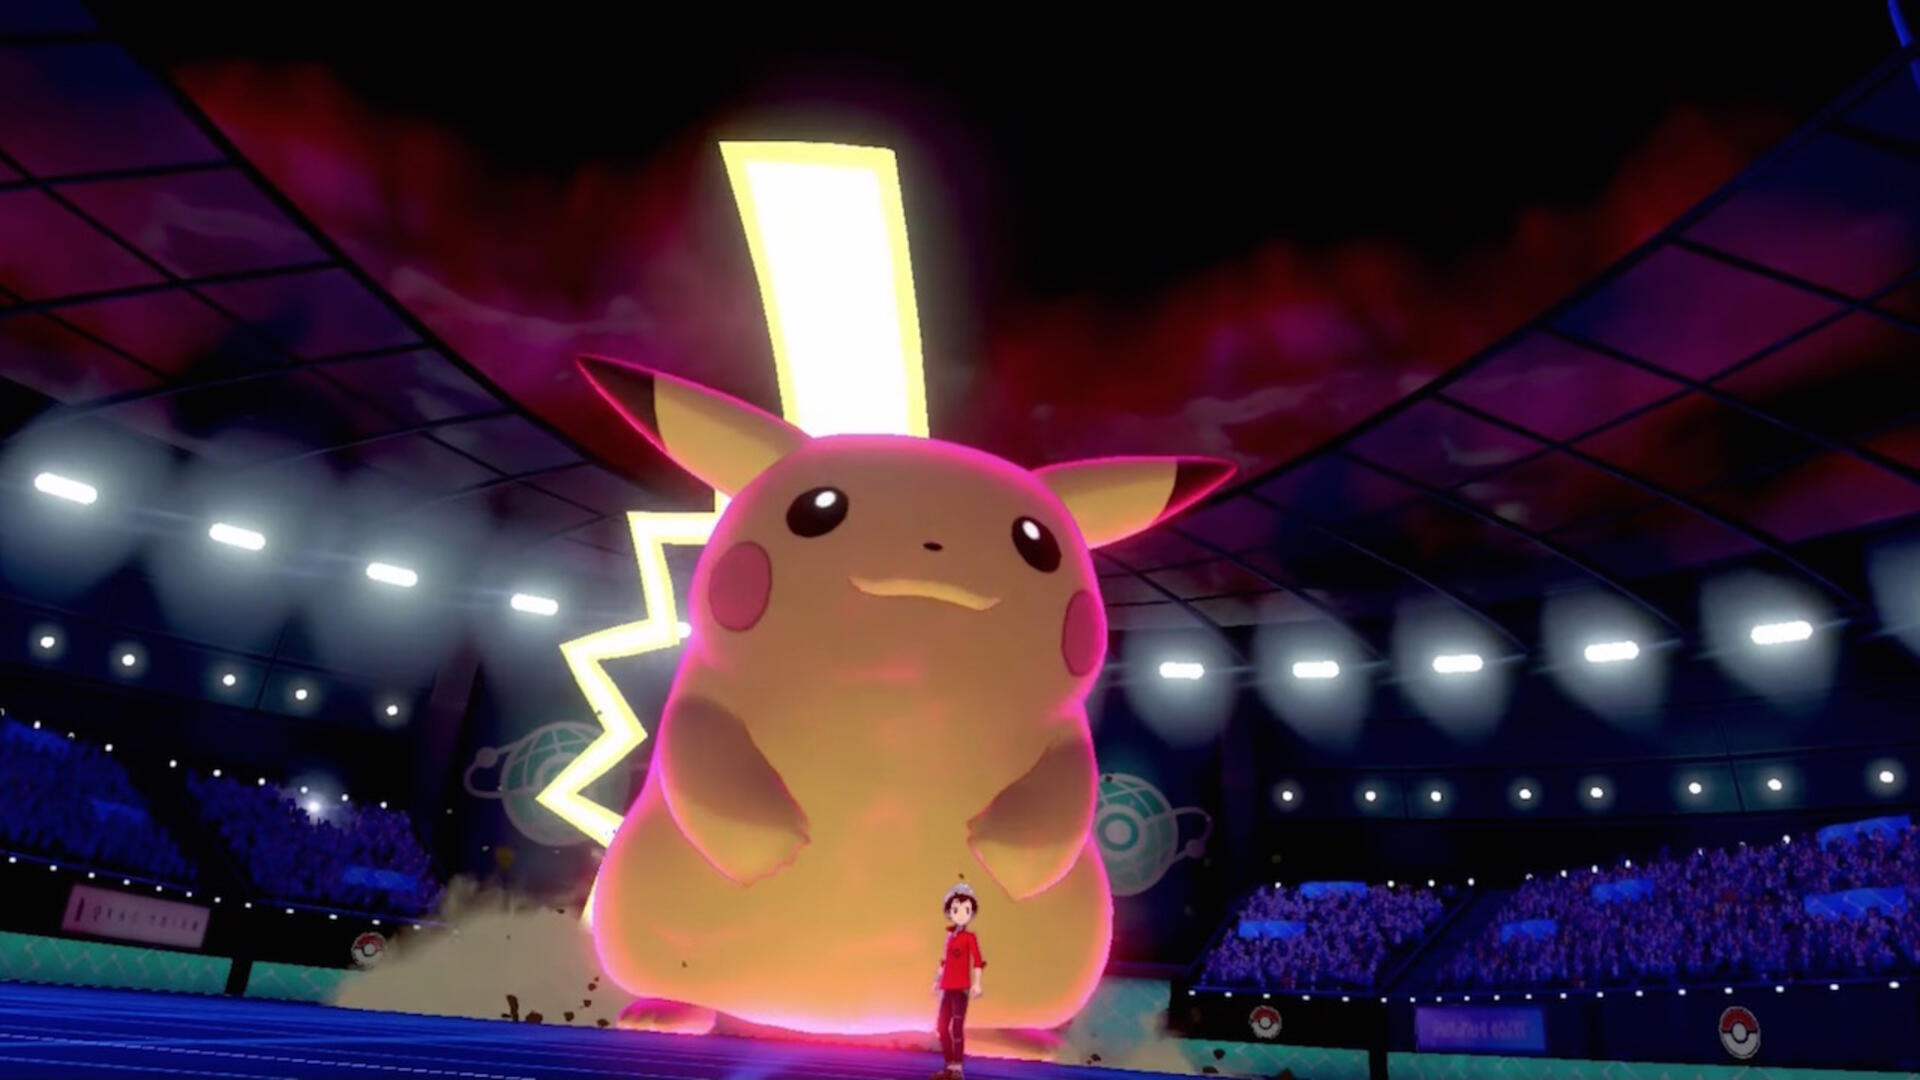 Here's Why Pokemon Fans Should Take the #GameFreakLied Claims With a Grain of Salt